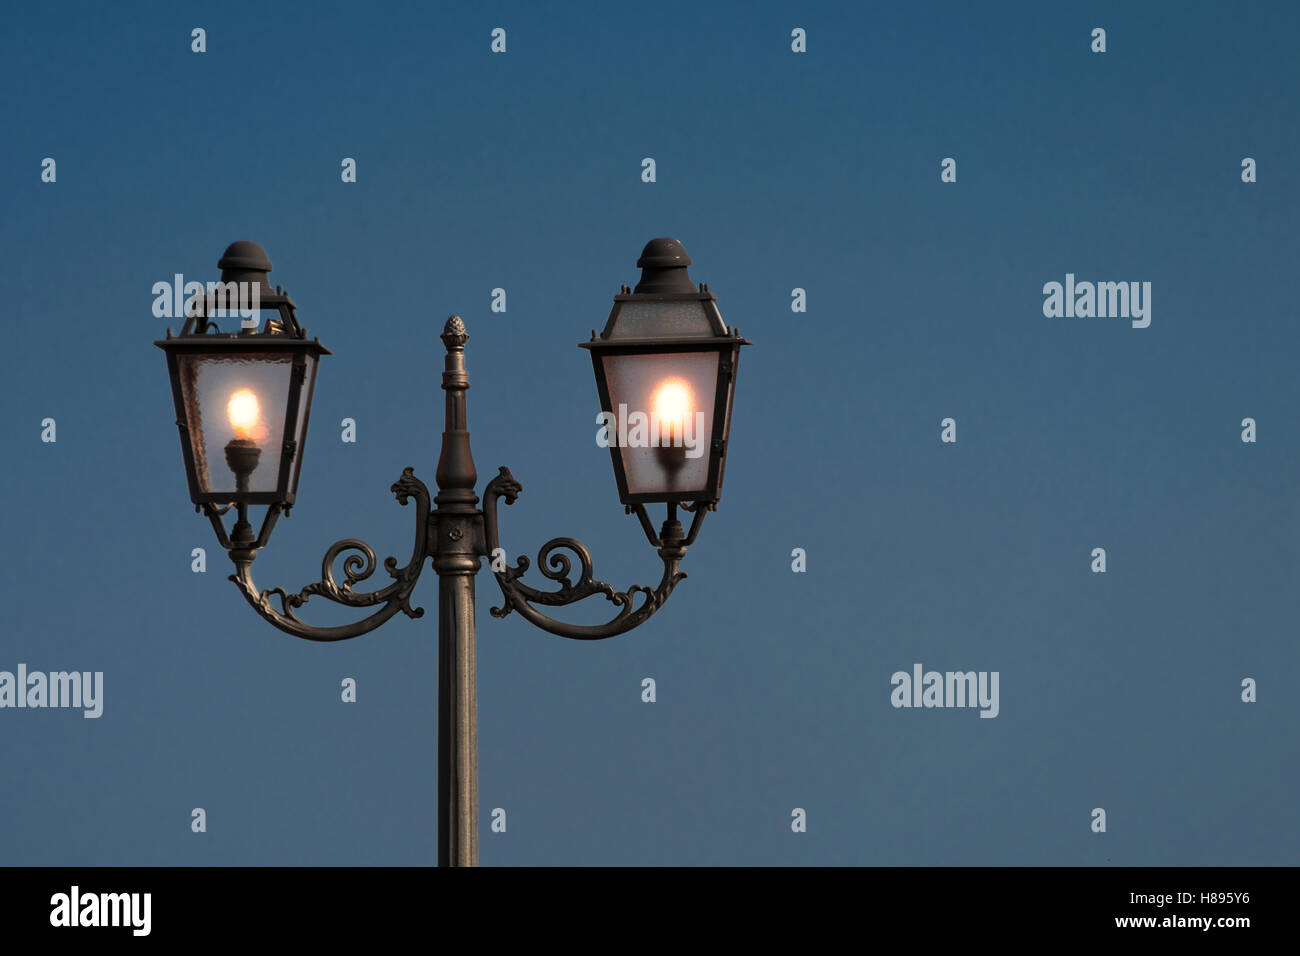 Vintage, old street lamp in classic style, made of cast iron and or metal Stock Photo